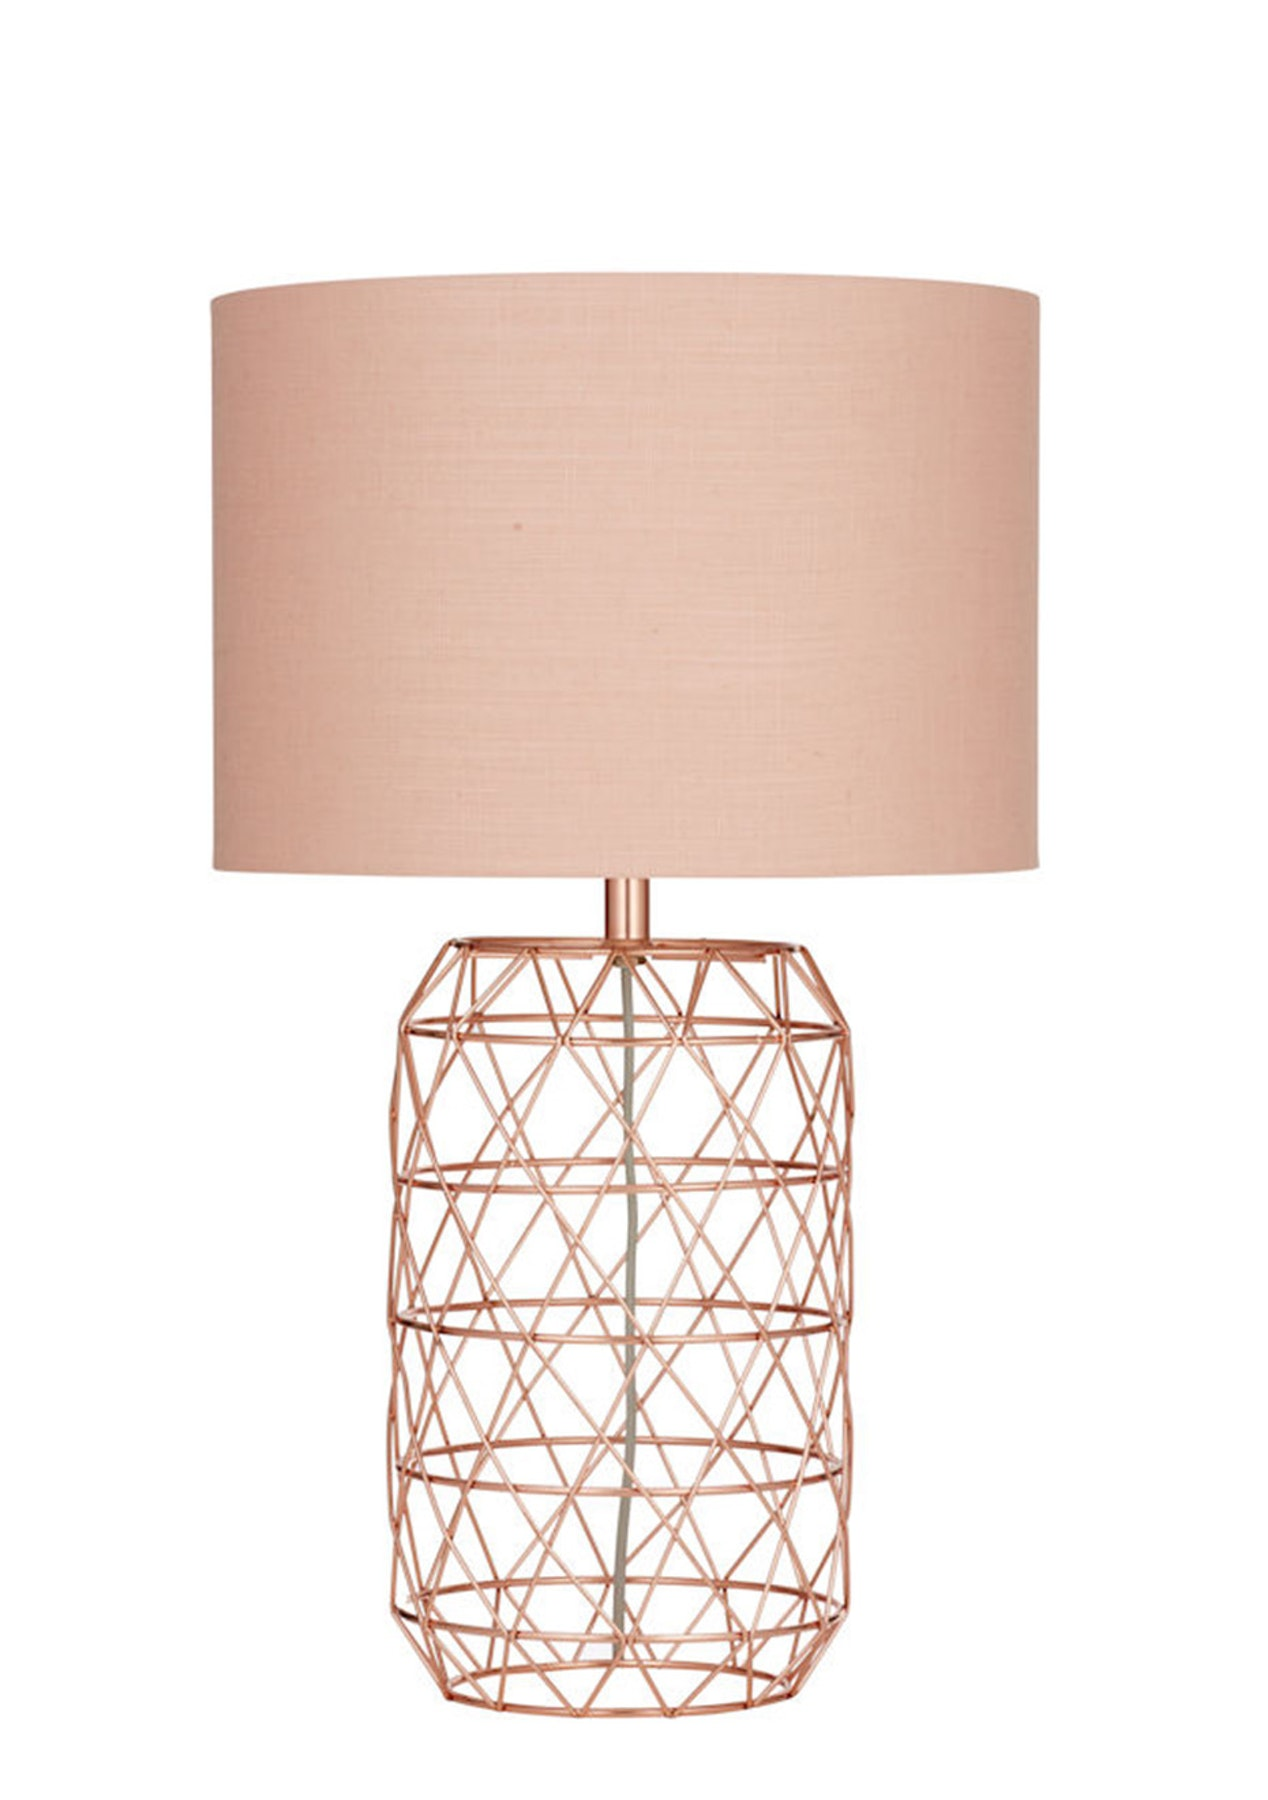 Amalfi ezra table lamp blush copper amalfi lighting for Amalfi copper floor lamp